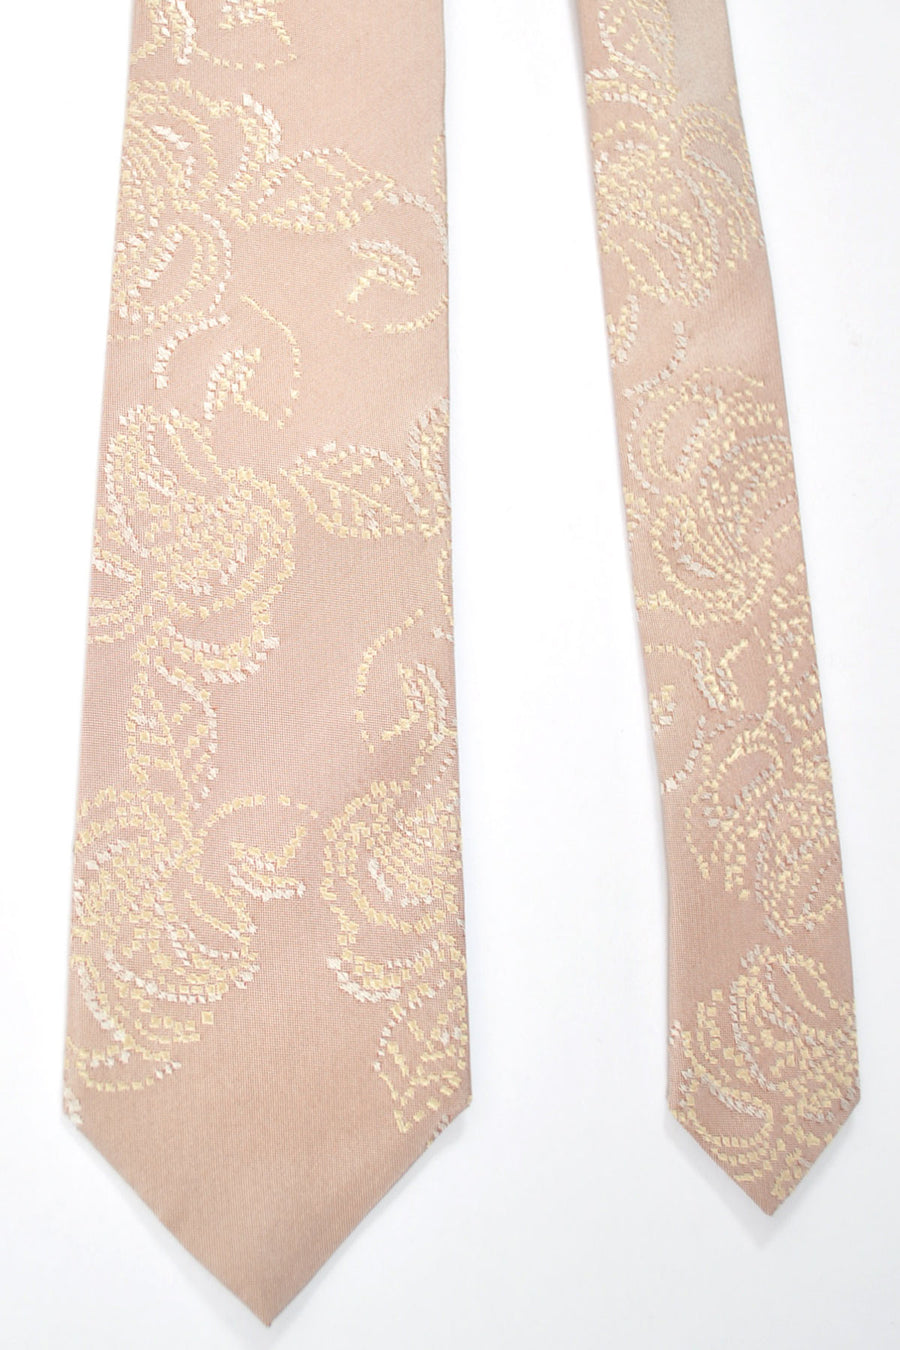 Kenzo Narrow Tie Pink Cream Floral